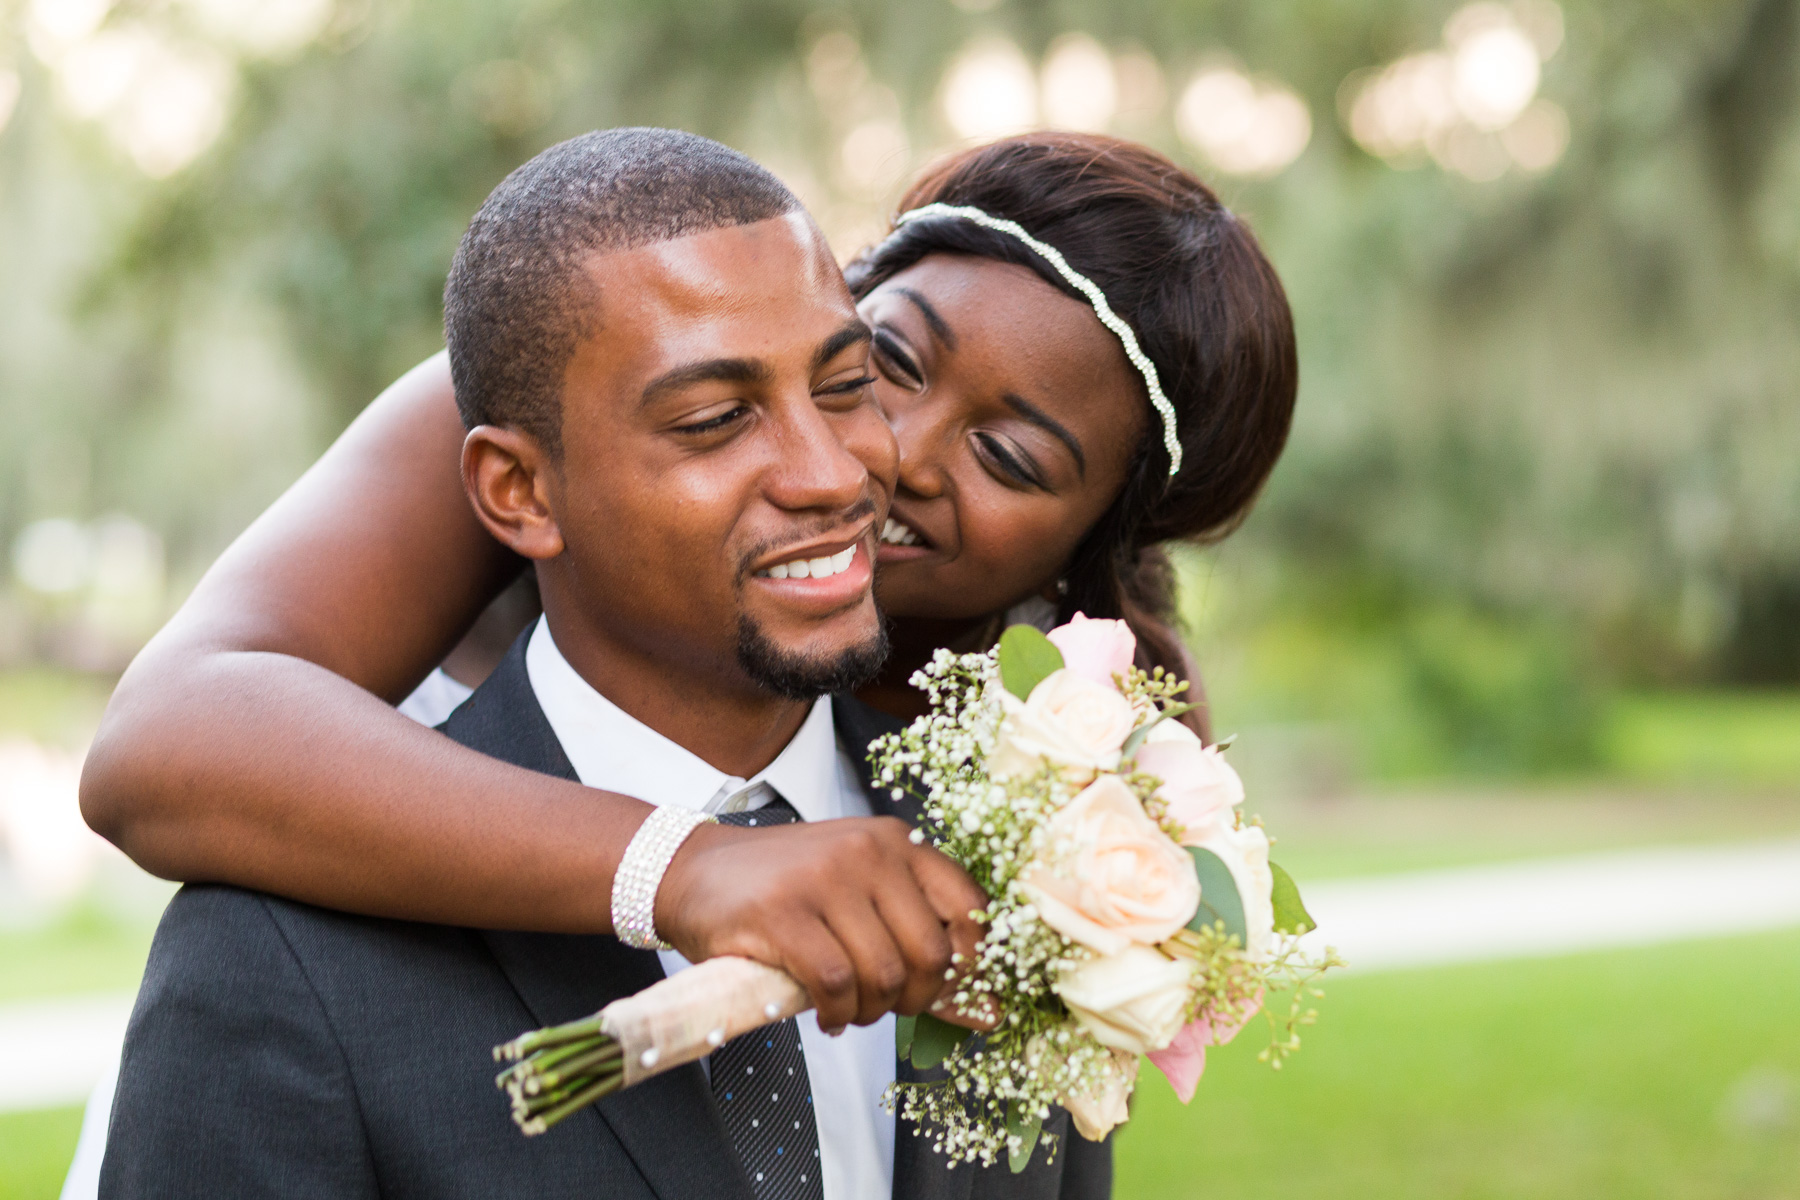 black singles in labadieville Blackpeoplemeetcom is the premier online dating service for black singles black singles are online now in our large and active community for dating.